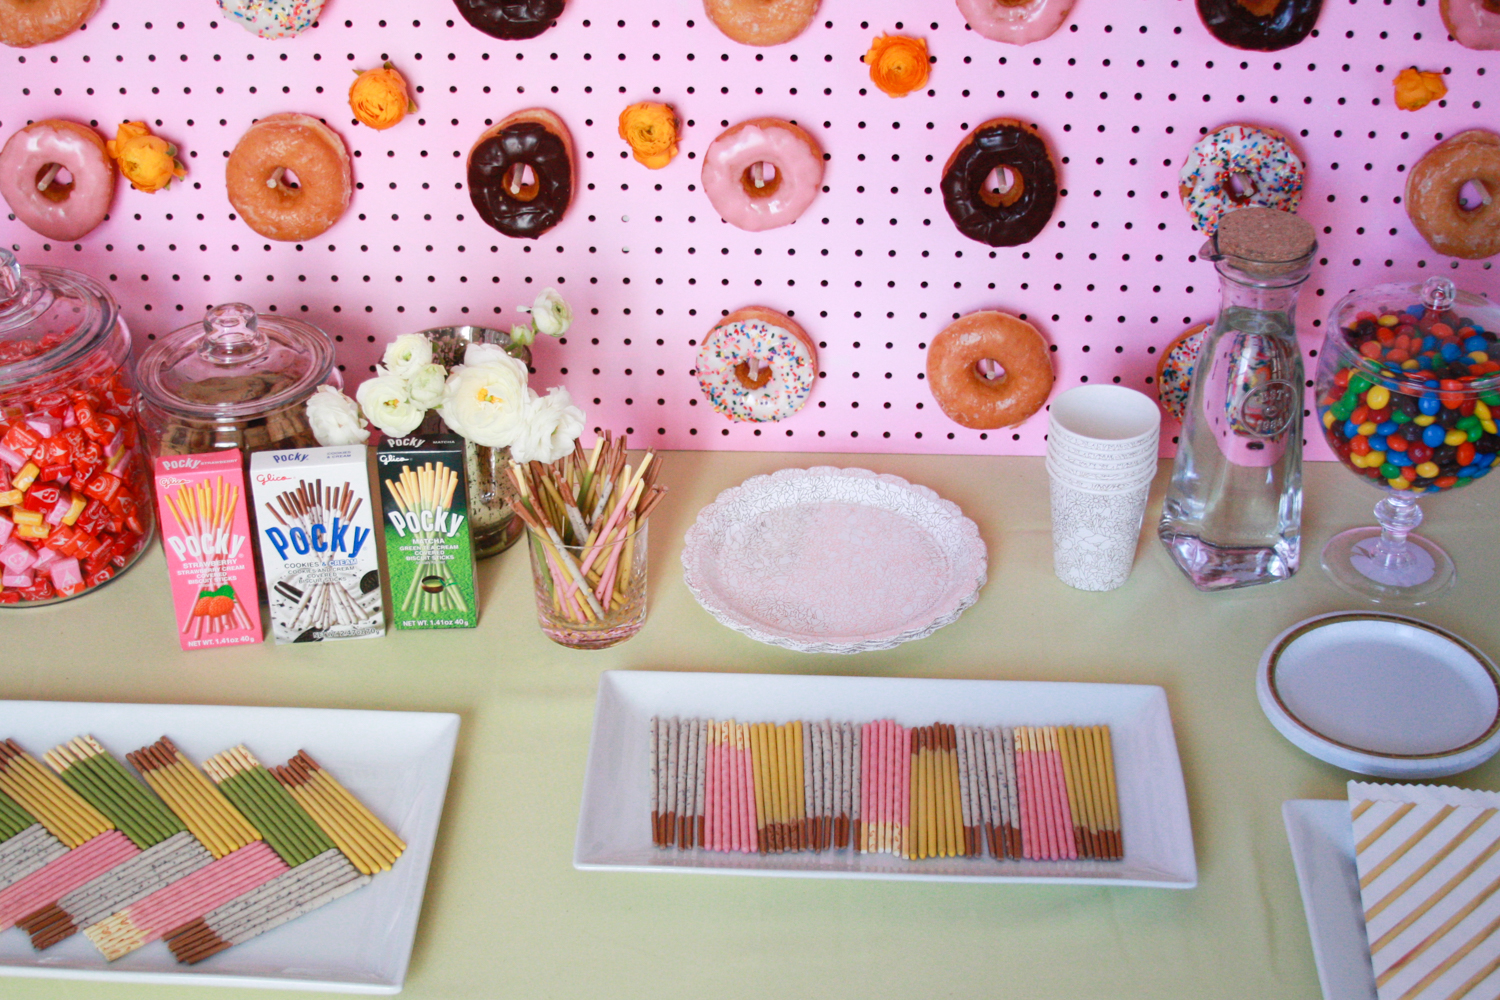 Tips for putting together your own easy dessert bar!